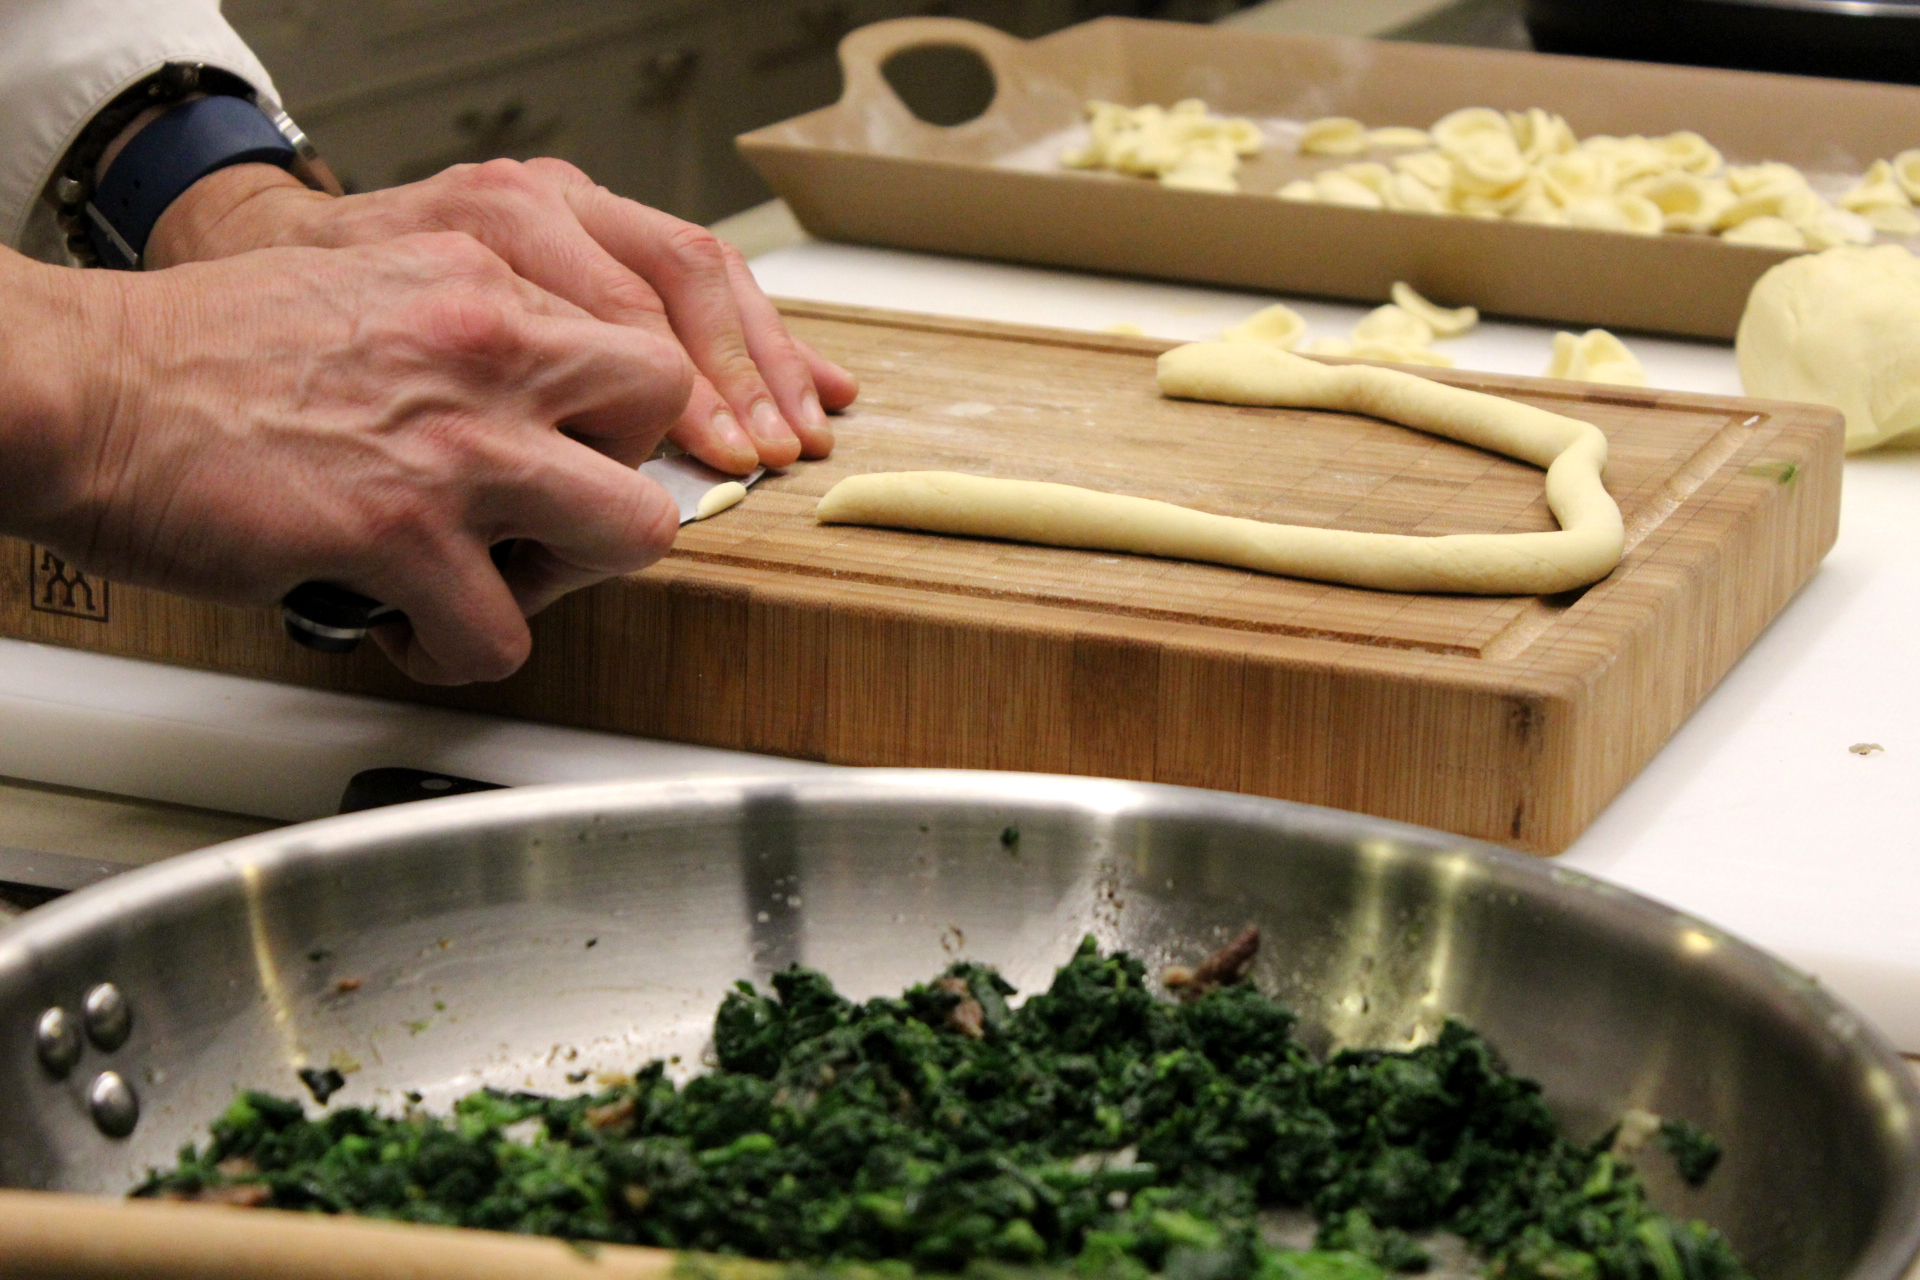 Using a knife to make the orecchiette